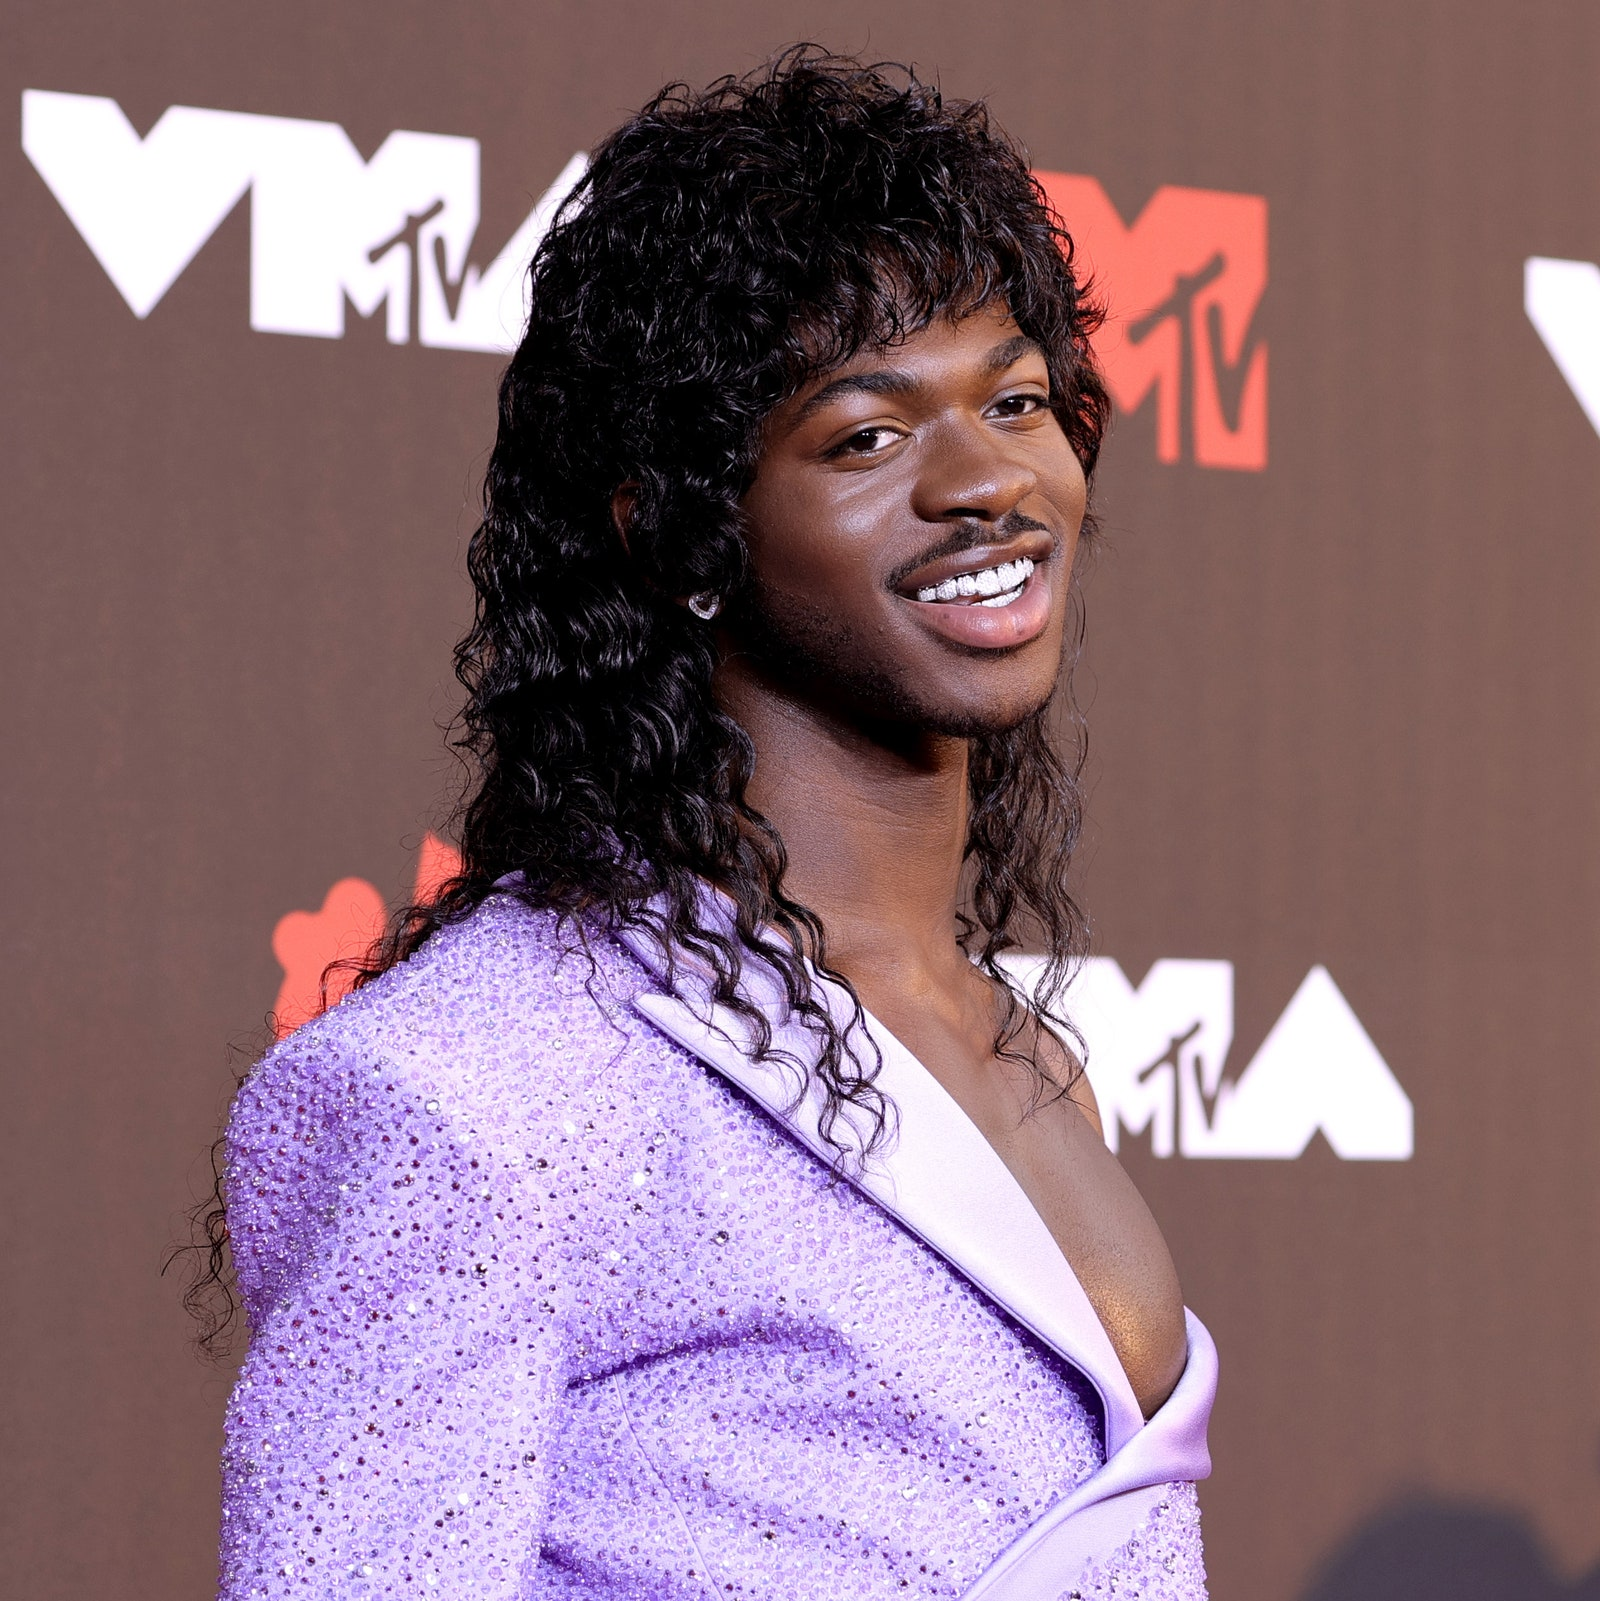 Lil Nas X attends the 2021 MTV Video Music Awards